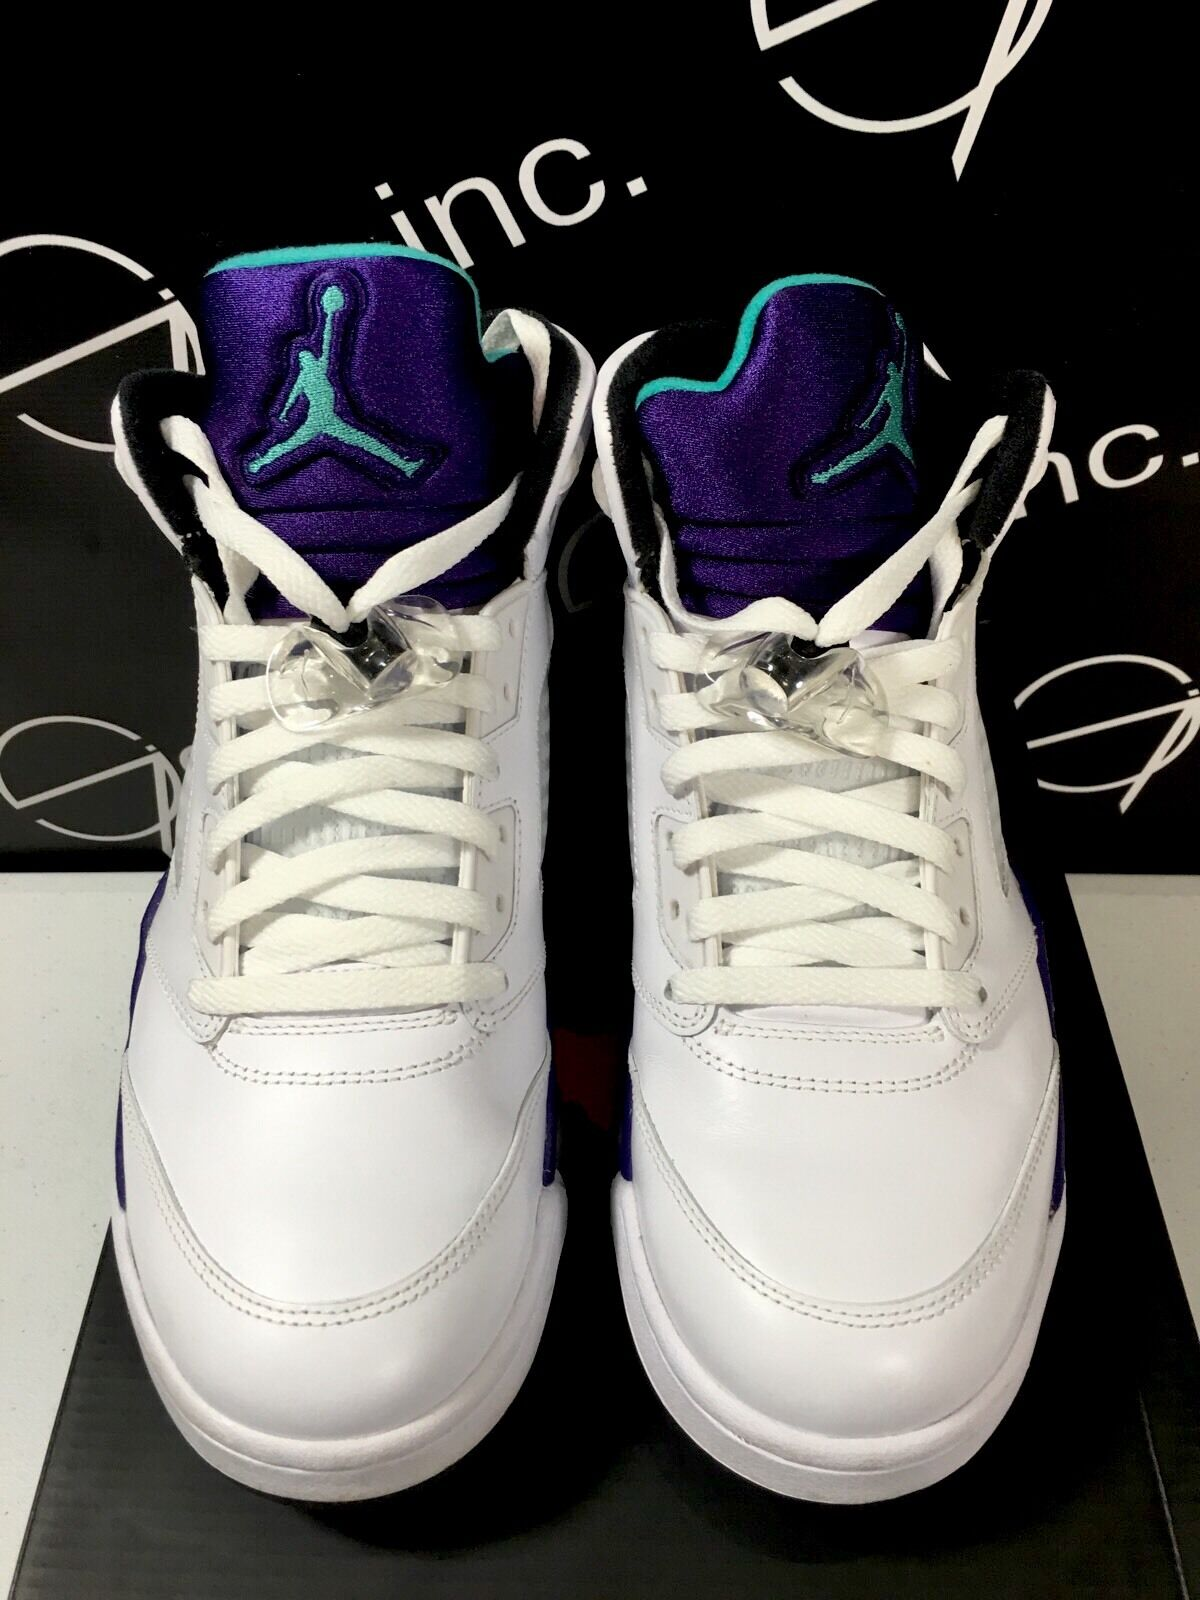 Authentic Nike Air Jordan 5 V Grape White Black Size 9.5